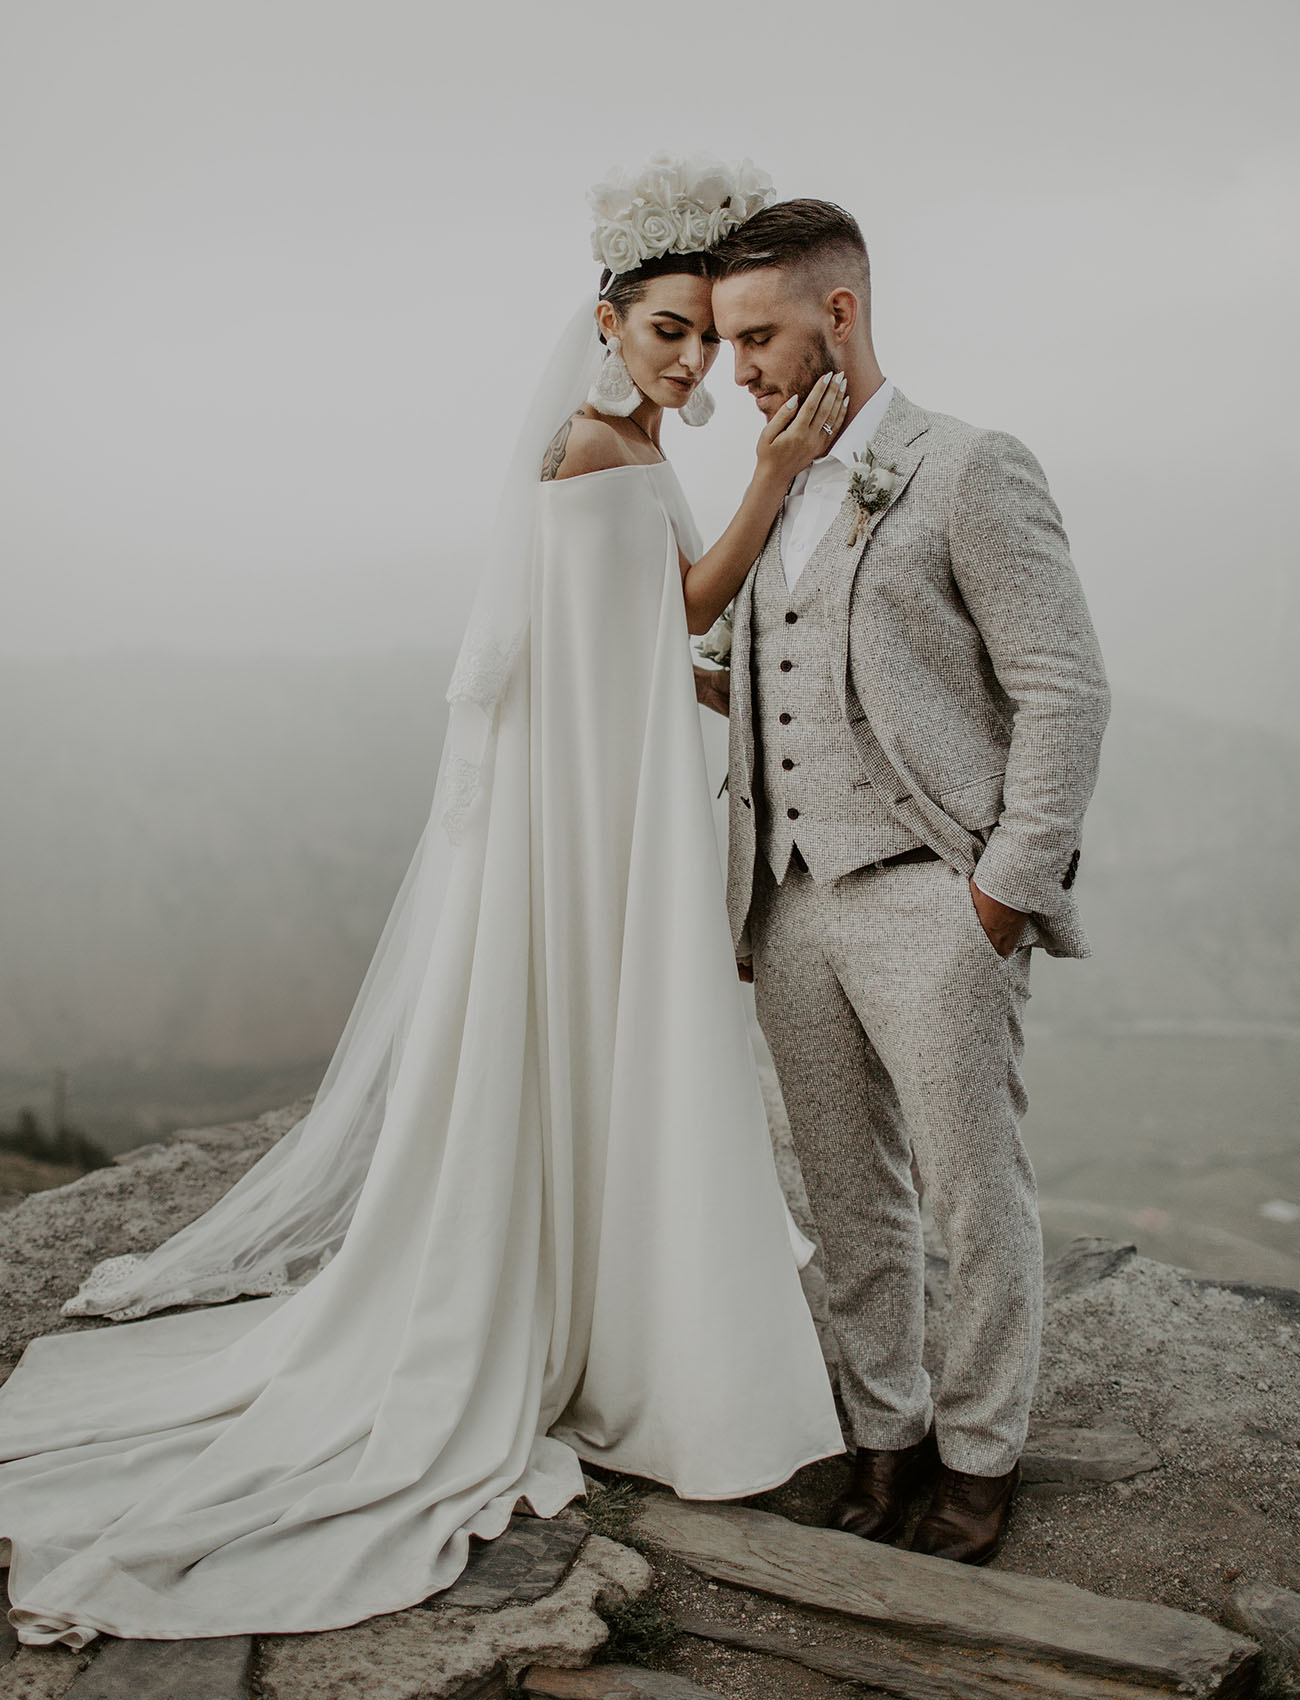 This unique wedding took part in the mountains of Georgia and everything looked wow, from the couple to landscapes